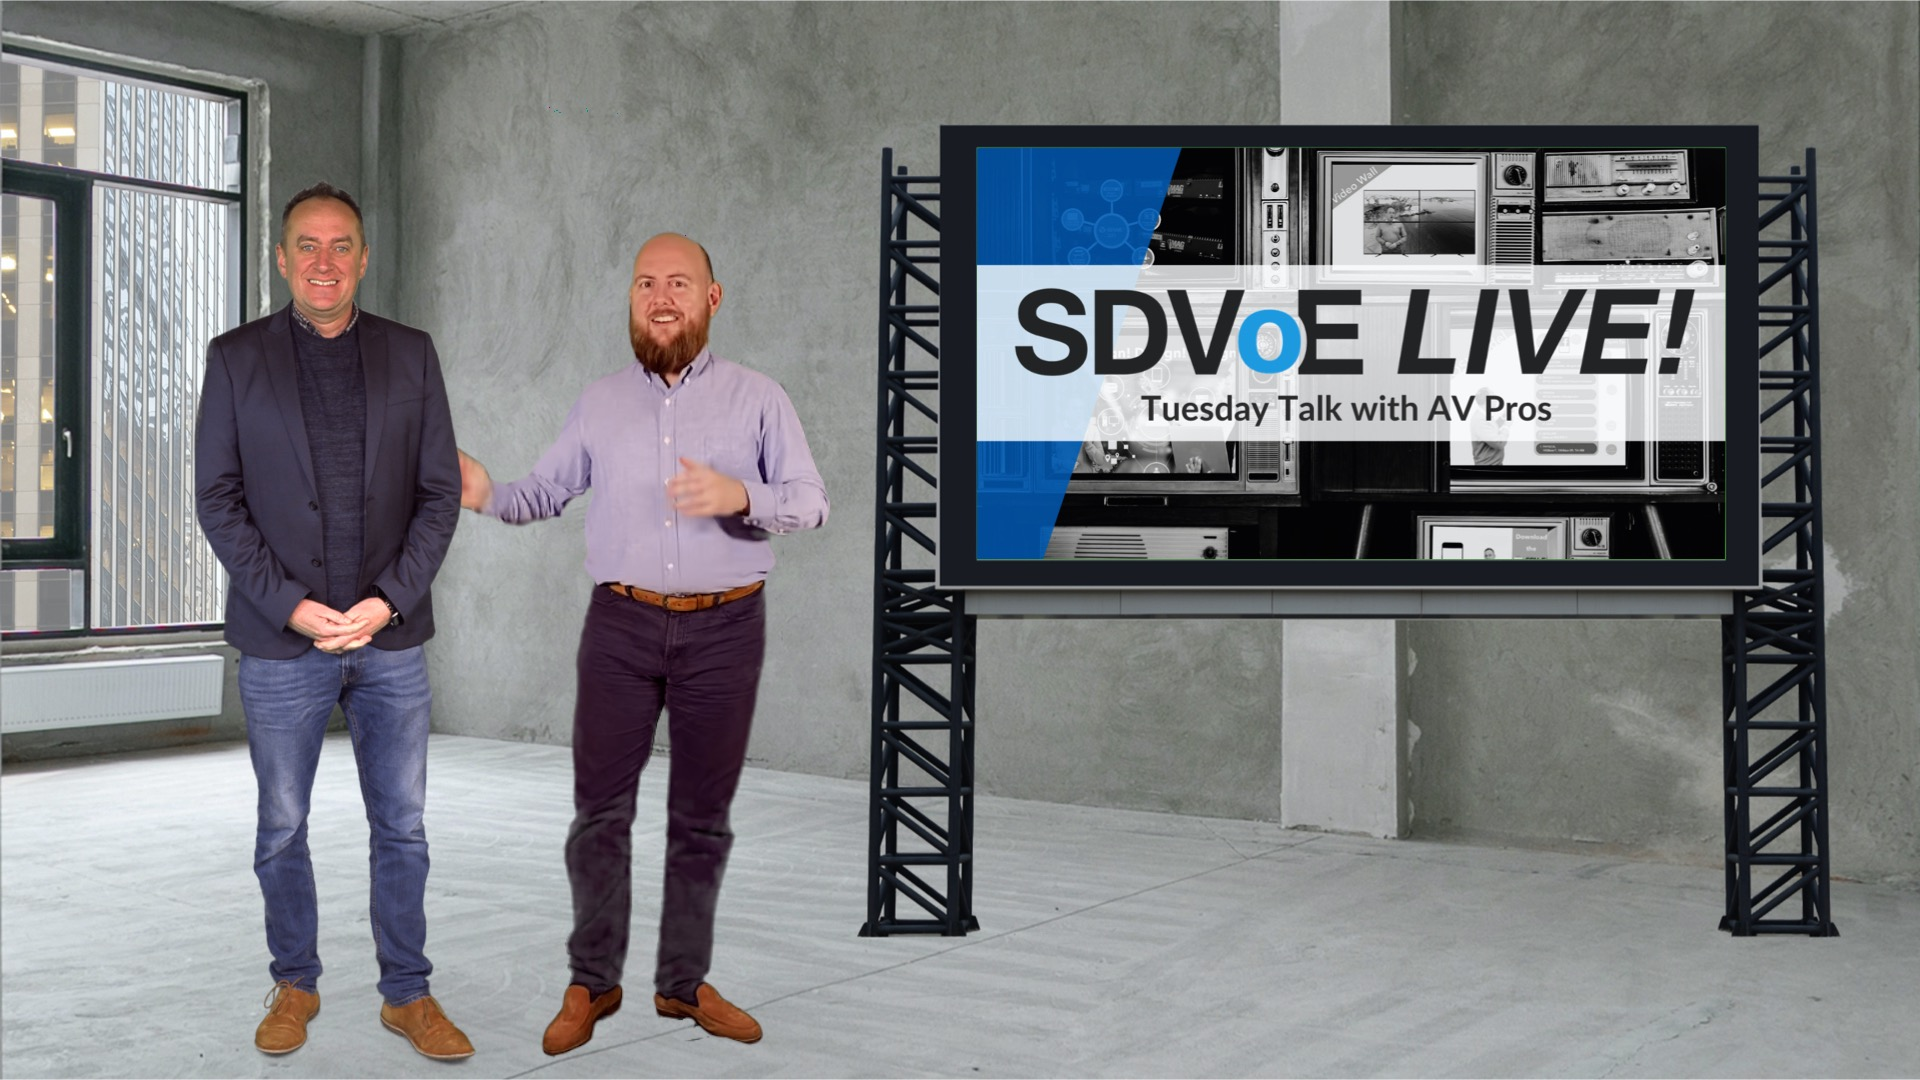 SDVoE LIVE! Episode 15: The Evolution of Office Space